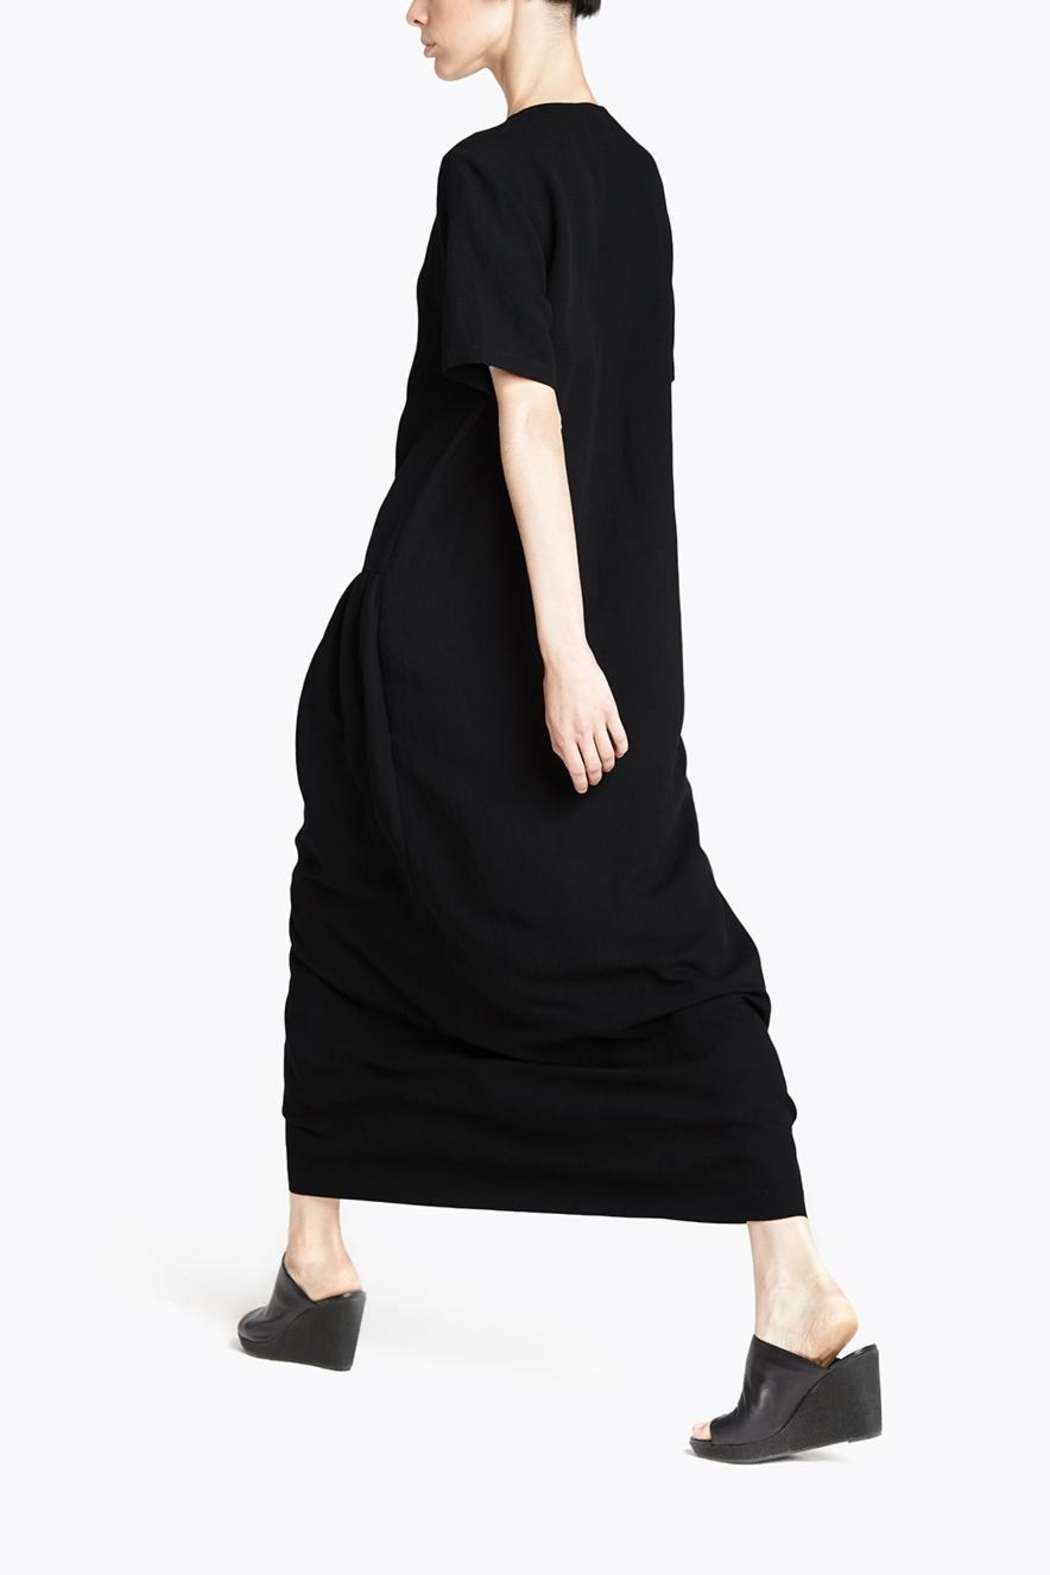 CYRILLE GASSILINE Drawstring Shirt Dress - Front Full Image